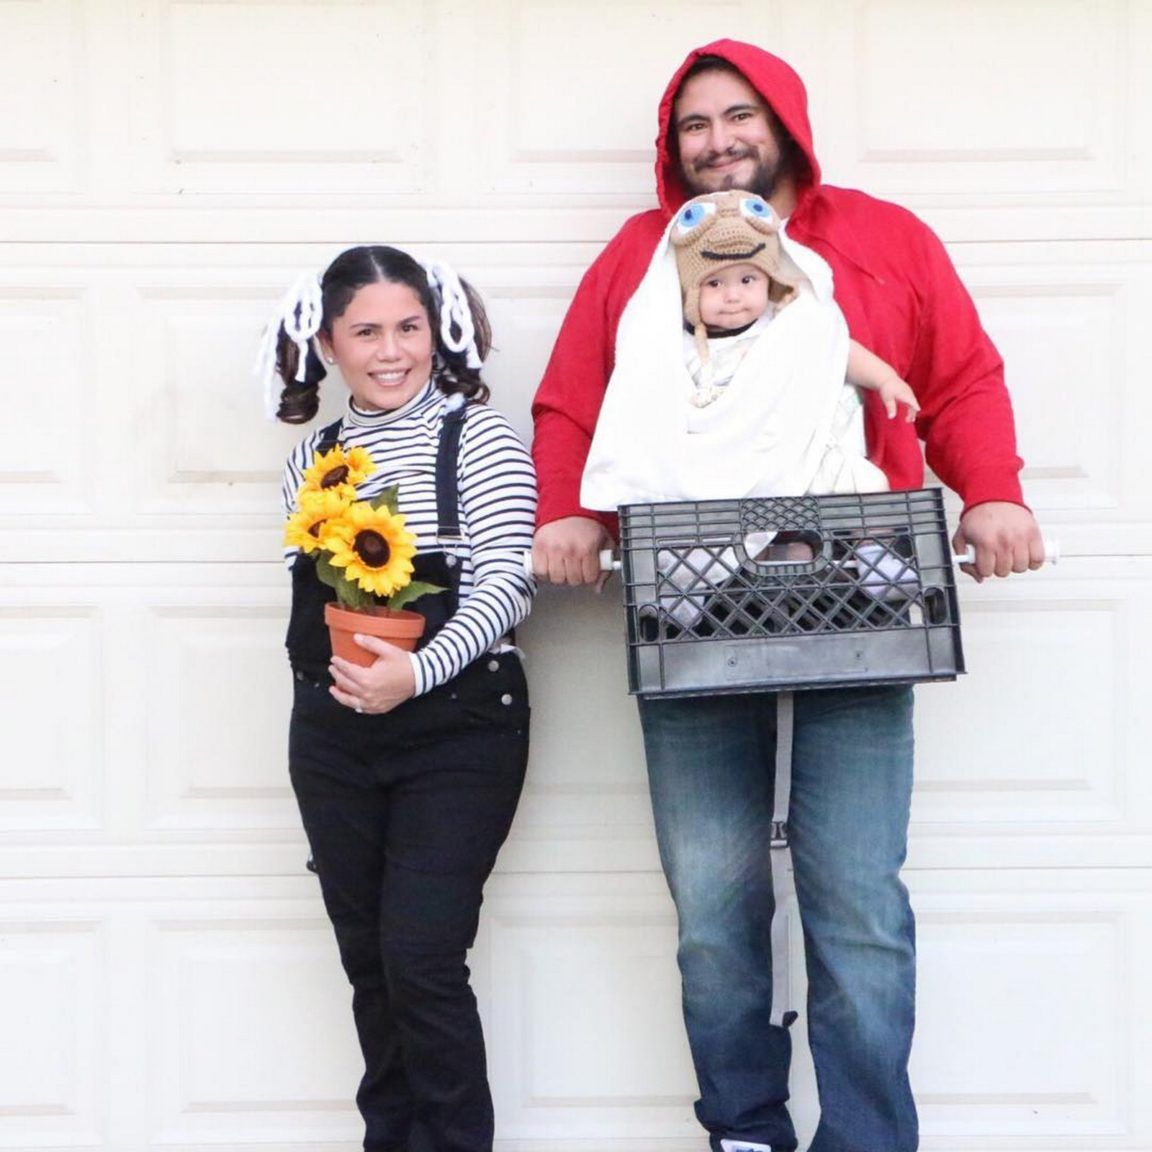 17 Hilarious Halloween Costumes for Babies and Parents! #funnyhalloweencostumes